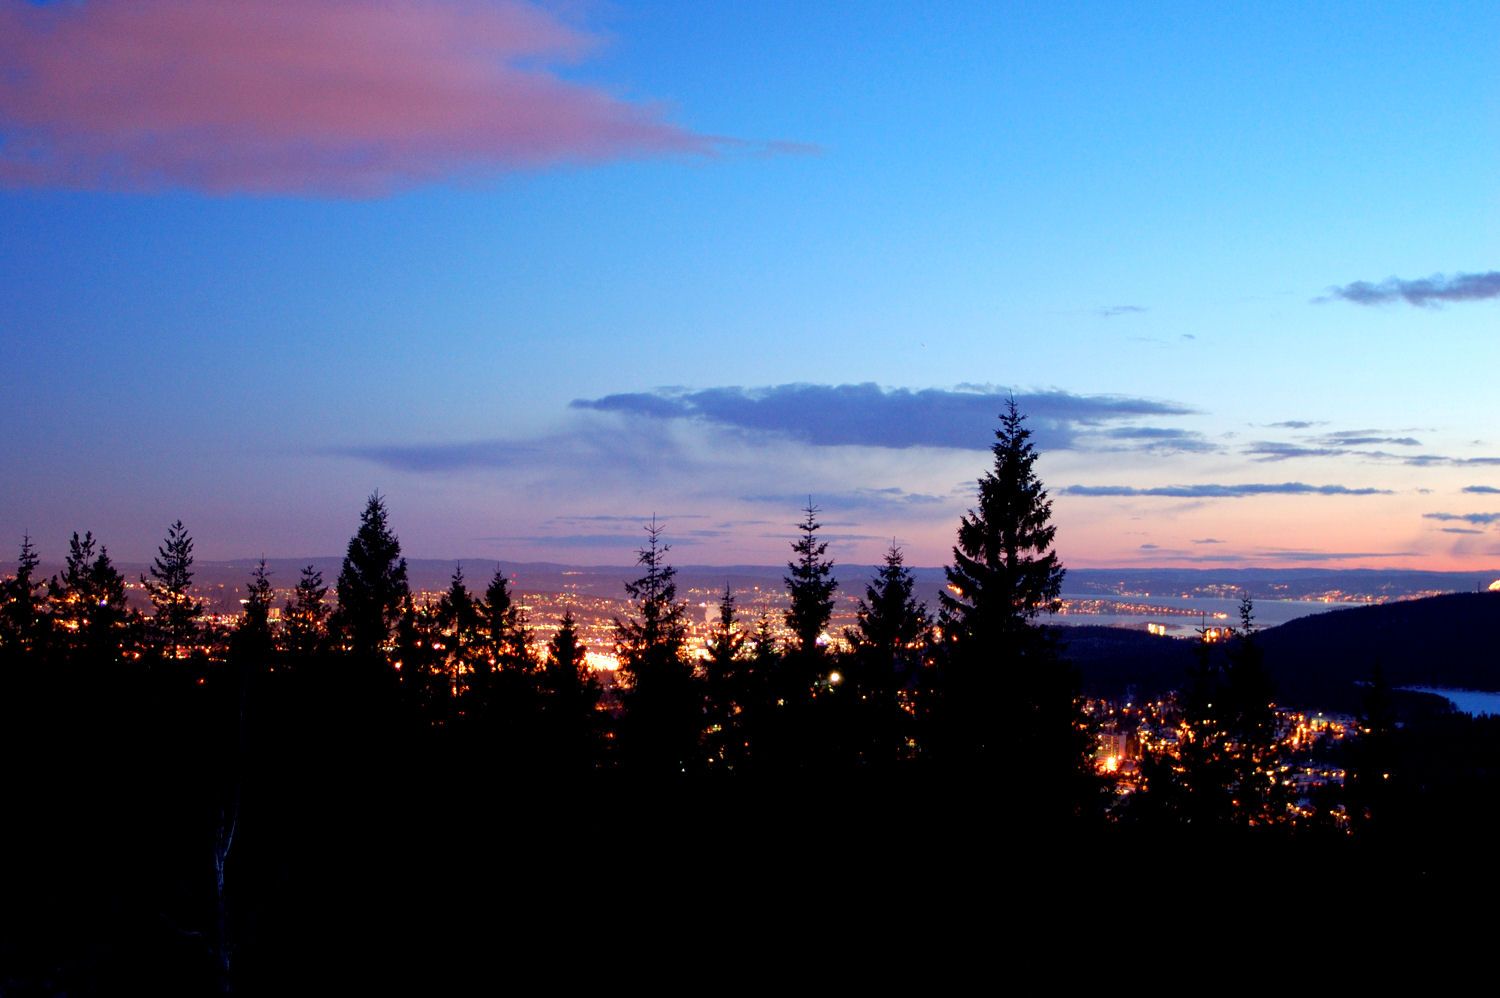 View from Røverkollen. Photo: Pål Stagnes